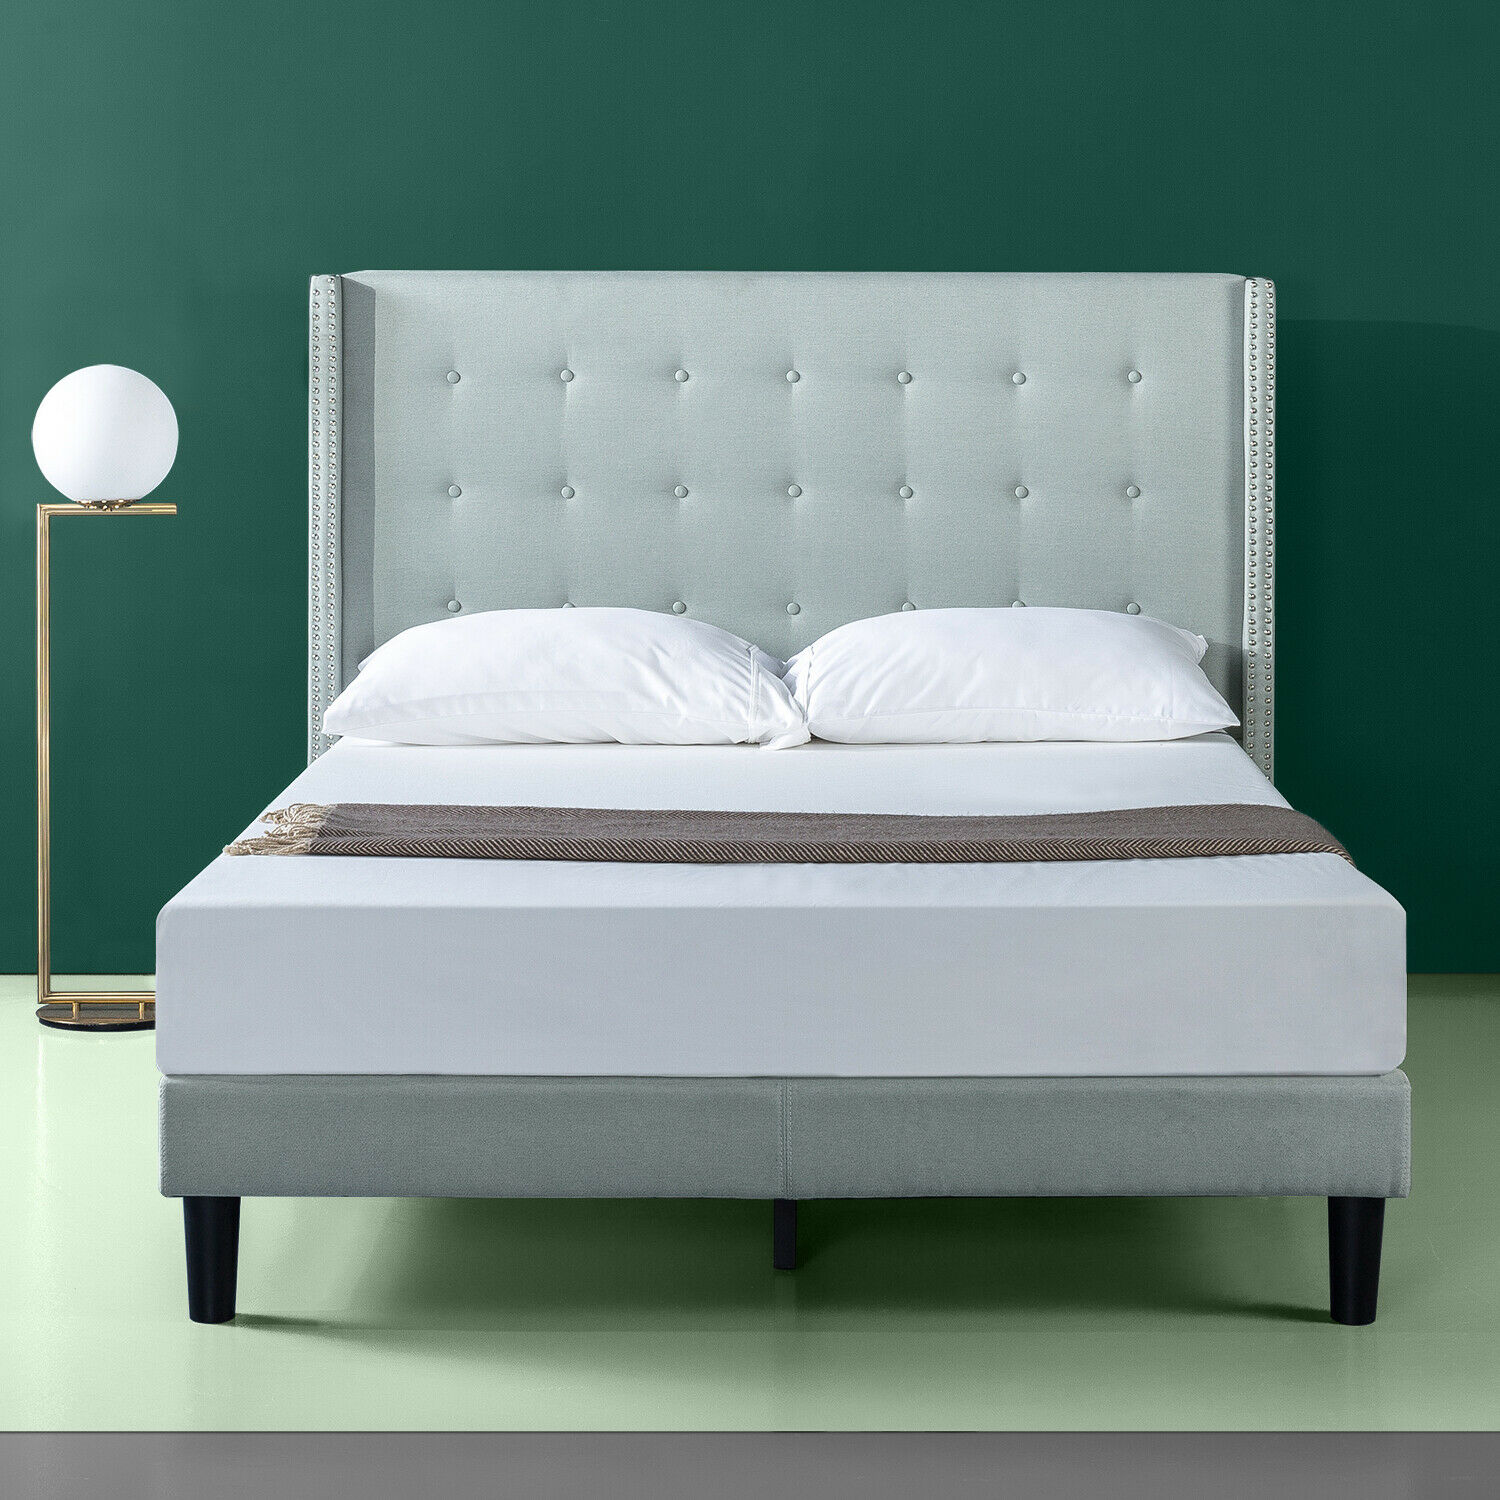 Tall Headboard 7 King Size Extra Large Tufted Upholstered Bedroom Furniture For Sale Online Ebay